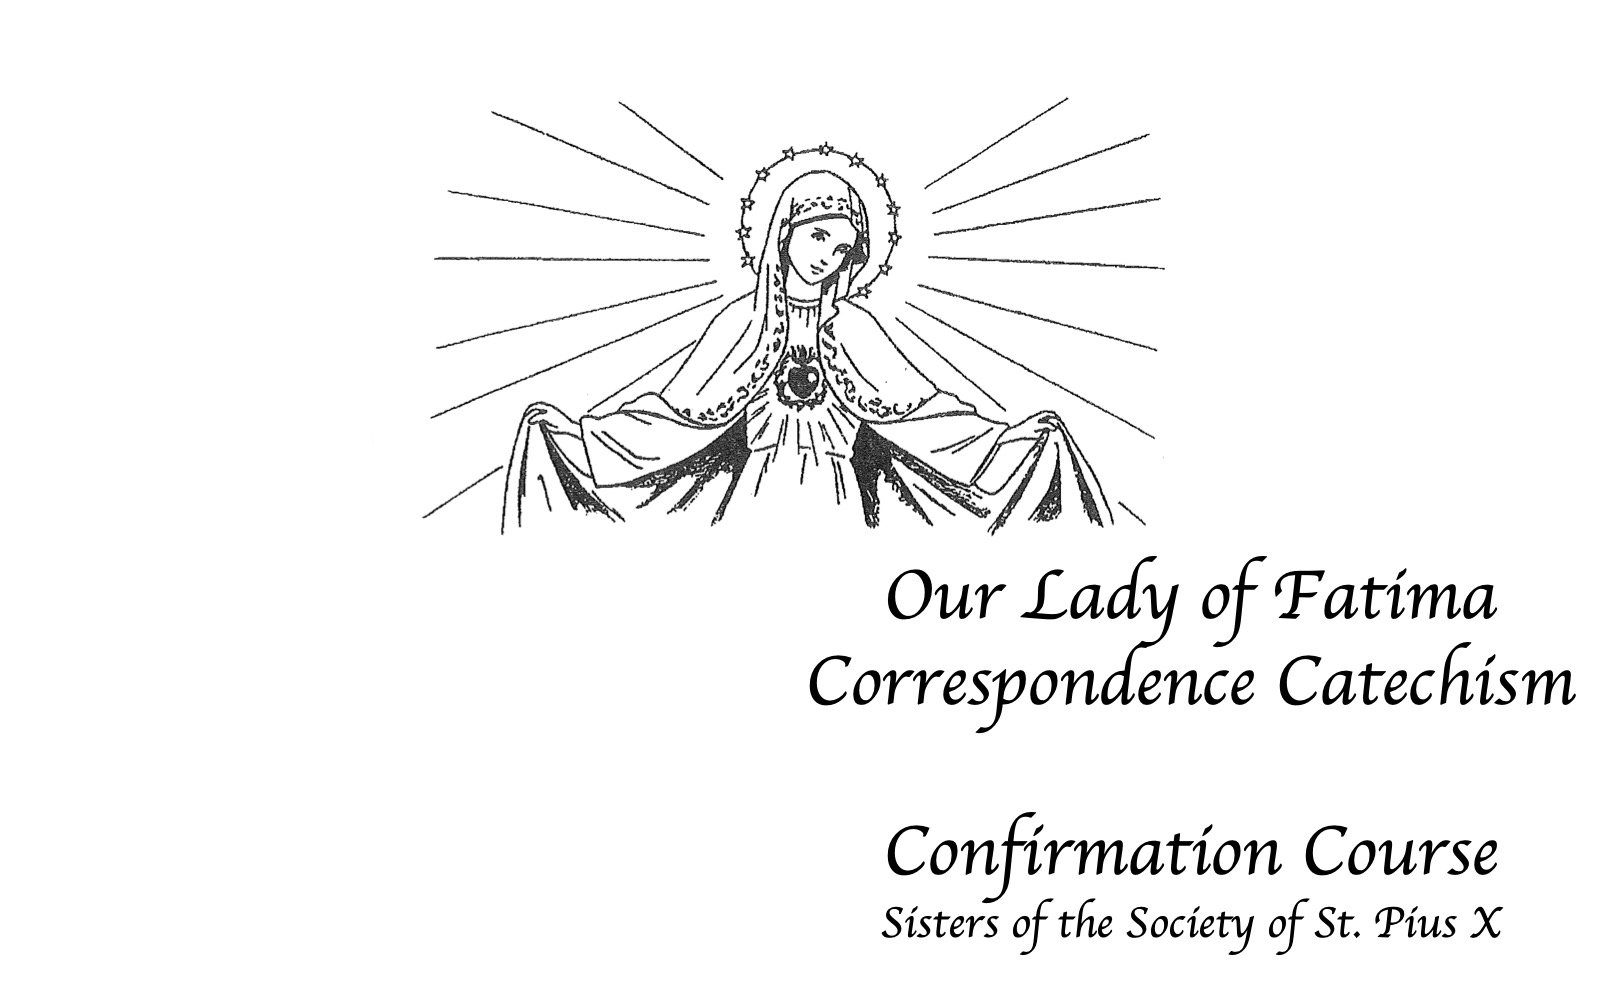 Our Lady of Fatima Catechism Correspondence Course for the